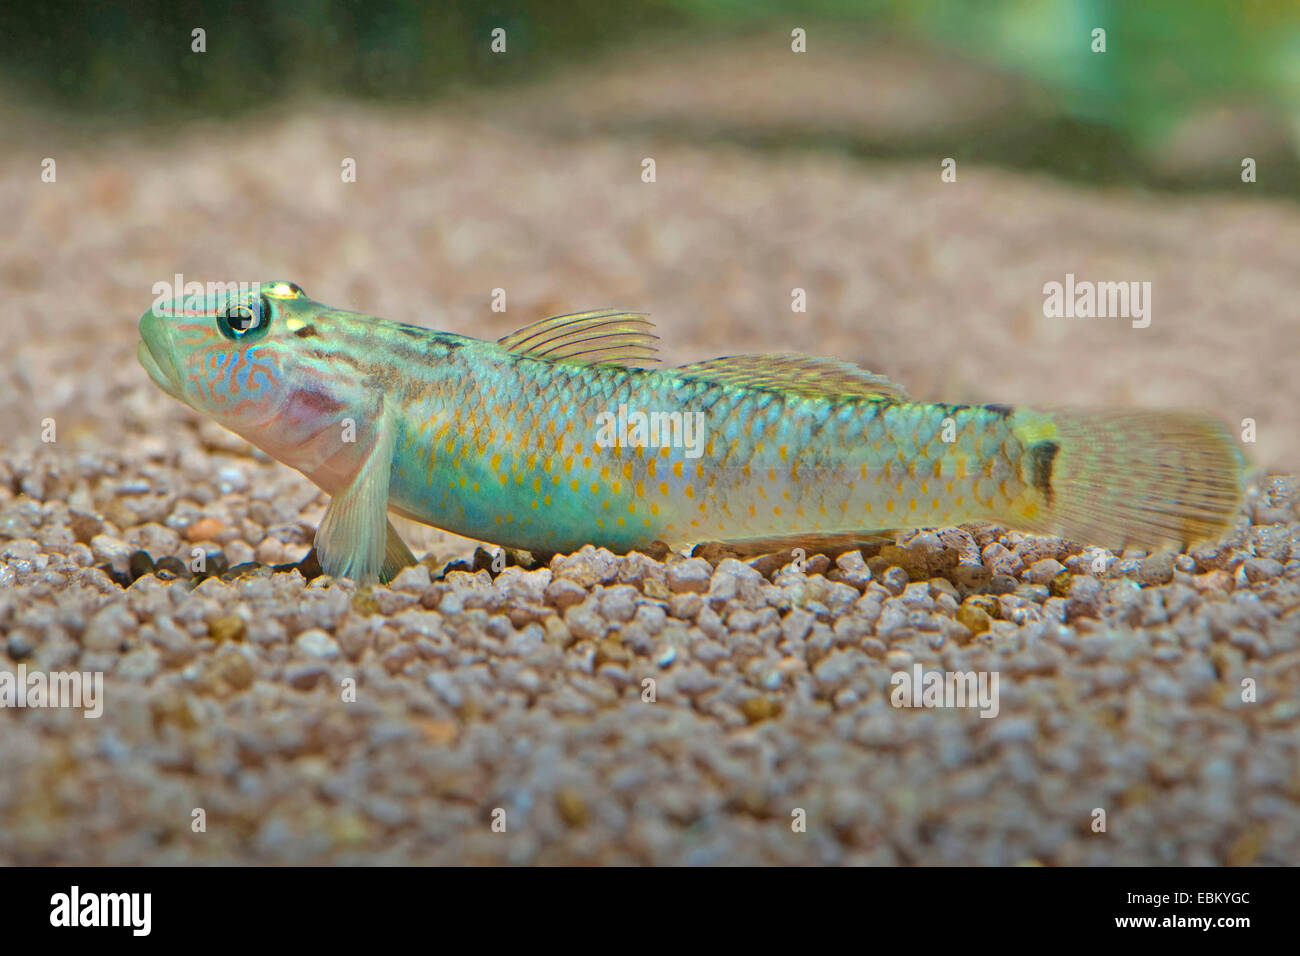 Goby (Rhinogobius nagoyae), on the ground - Stock Image